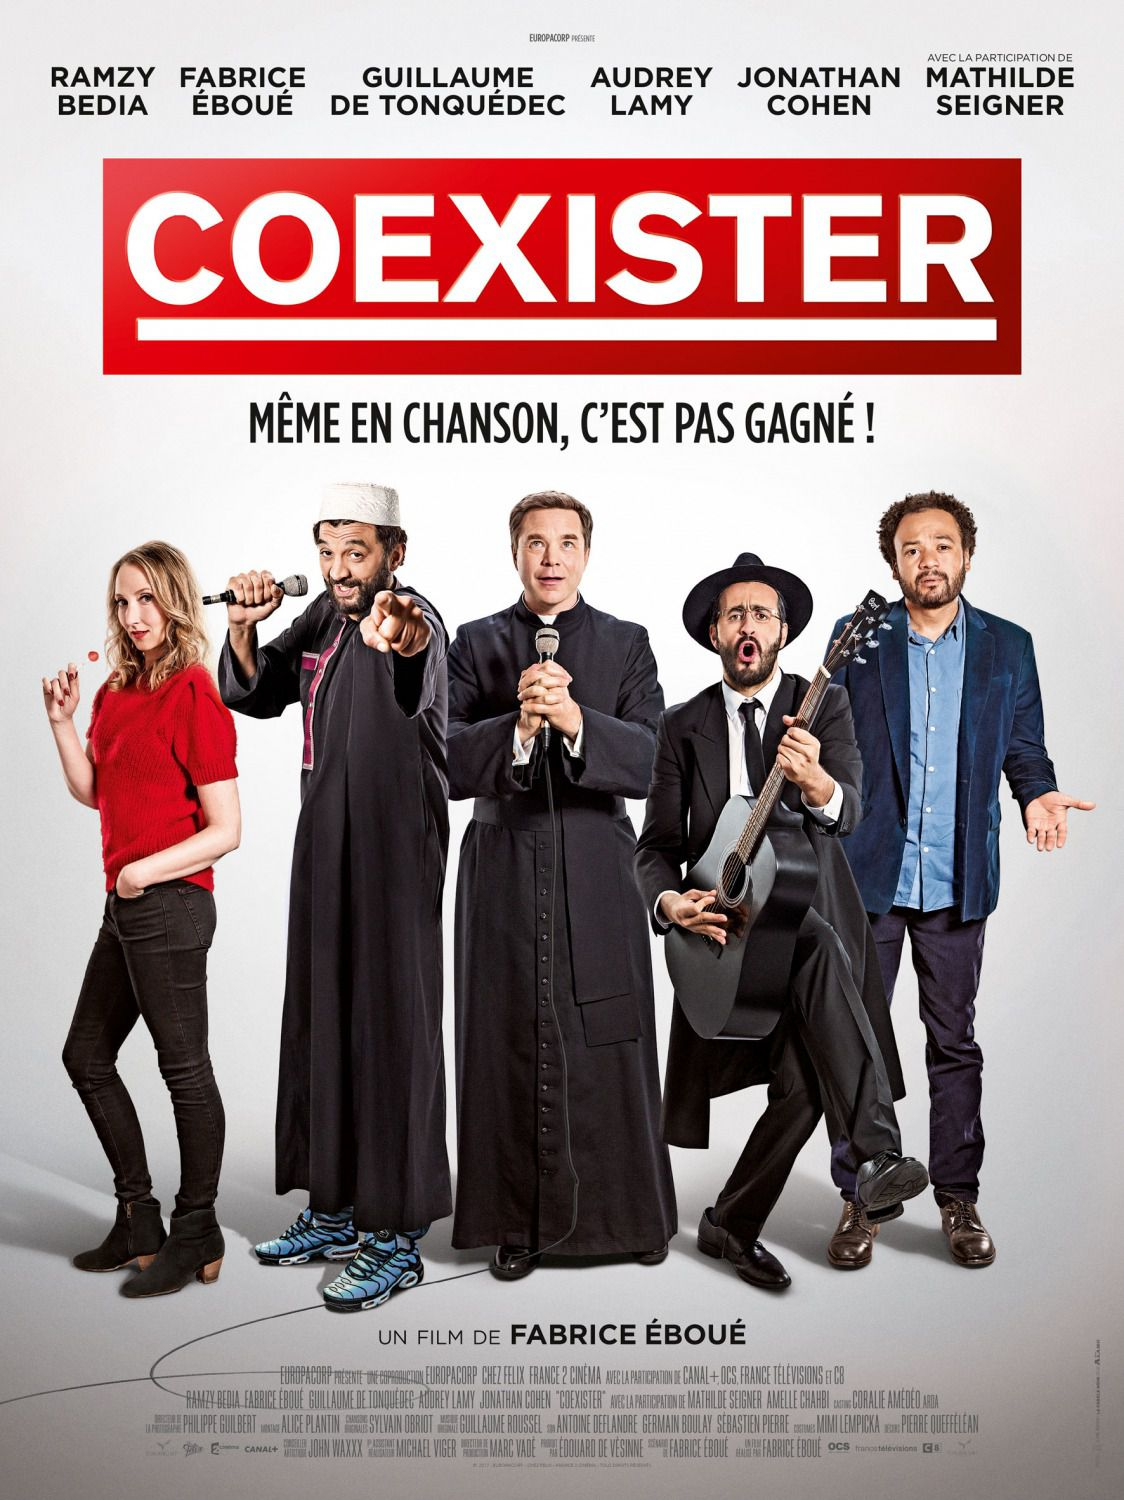 Coexister - Coesistenza - Coexistence - comedy film poster